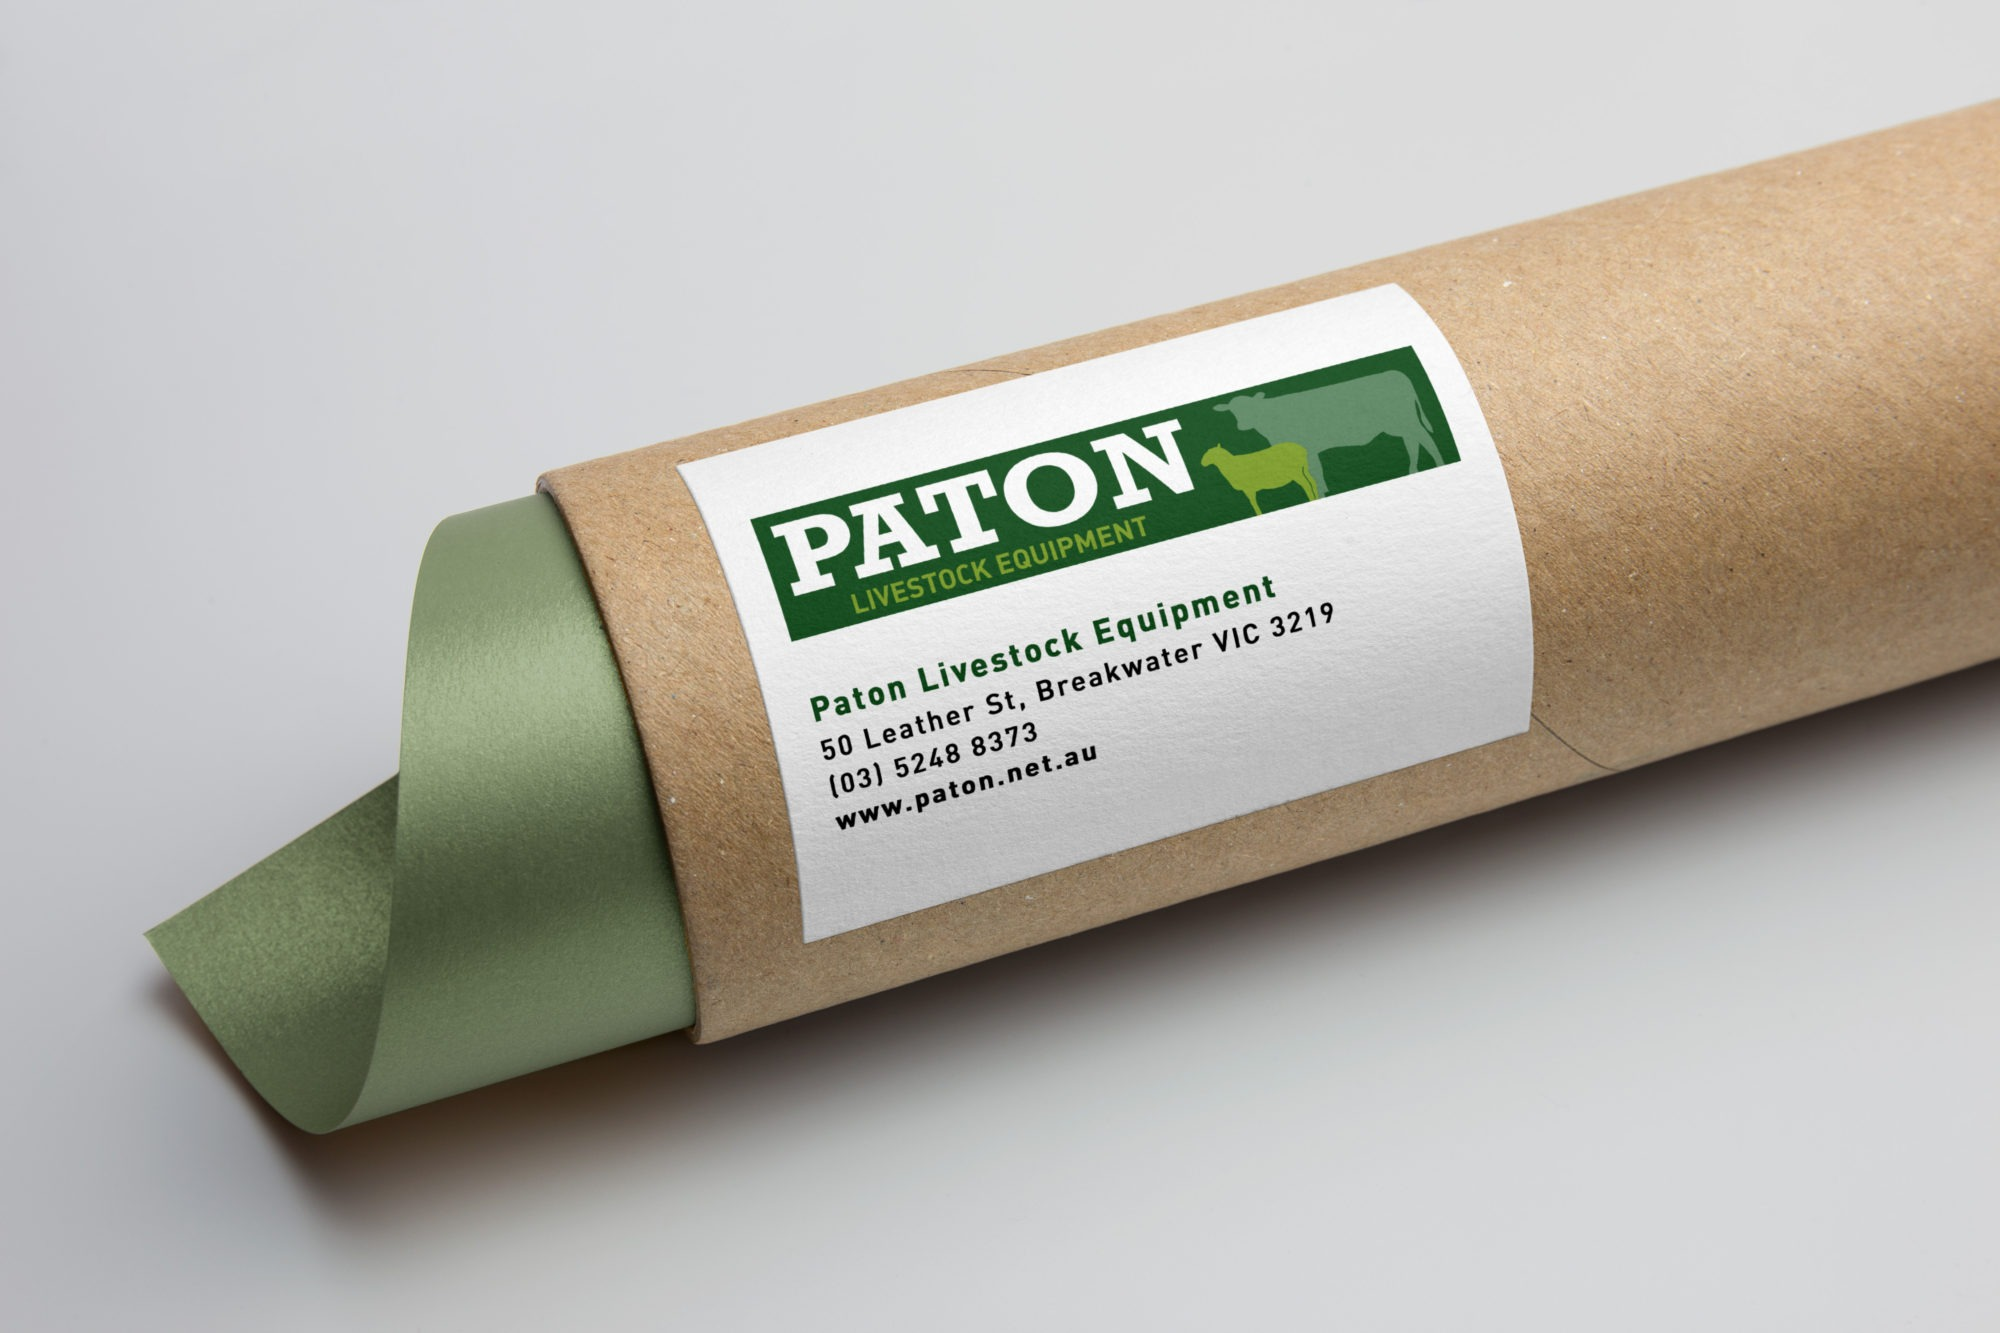 Paton livestock equipment logo tube